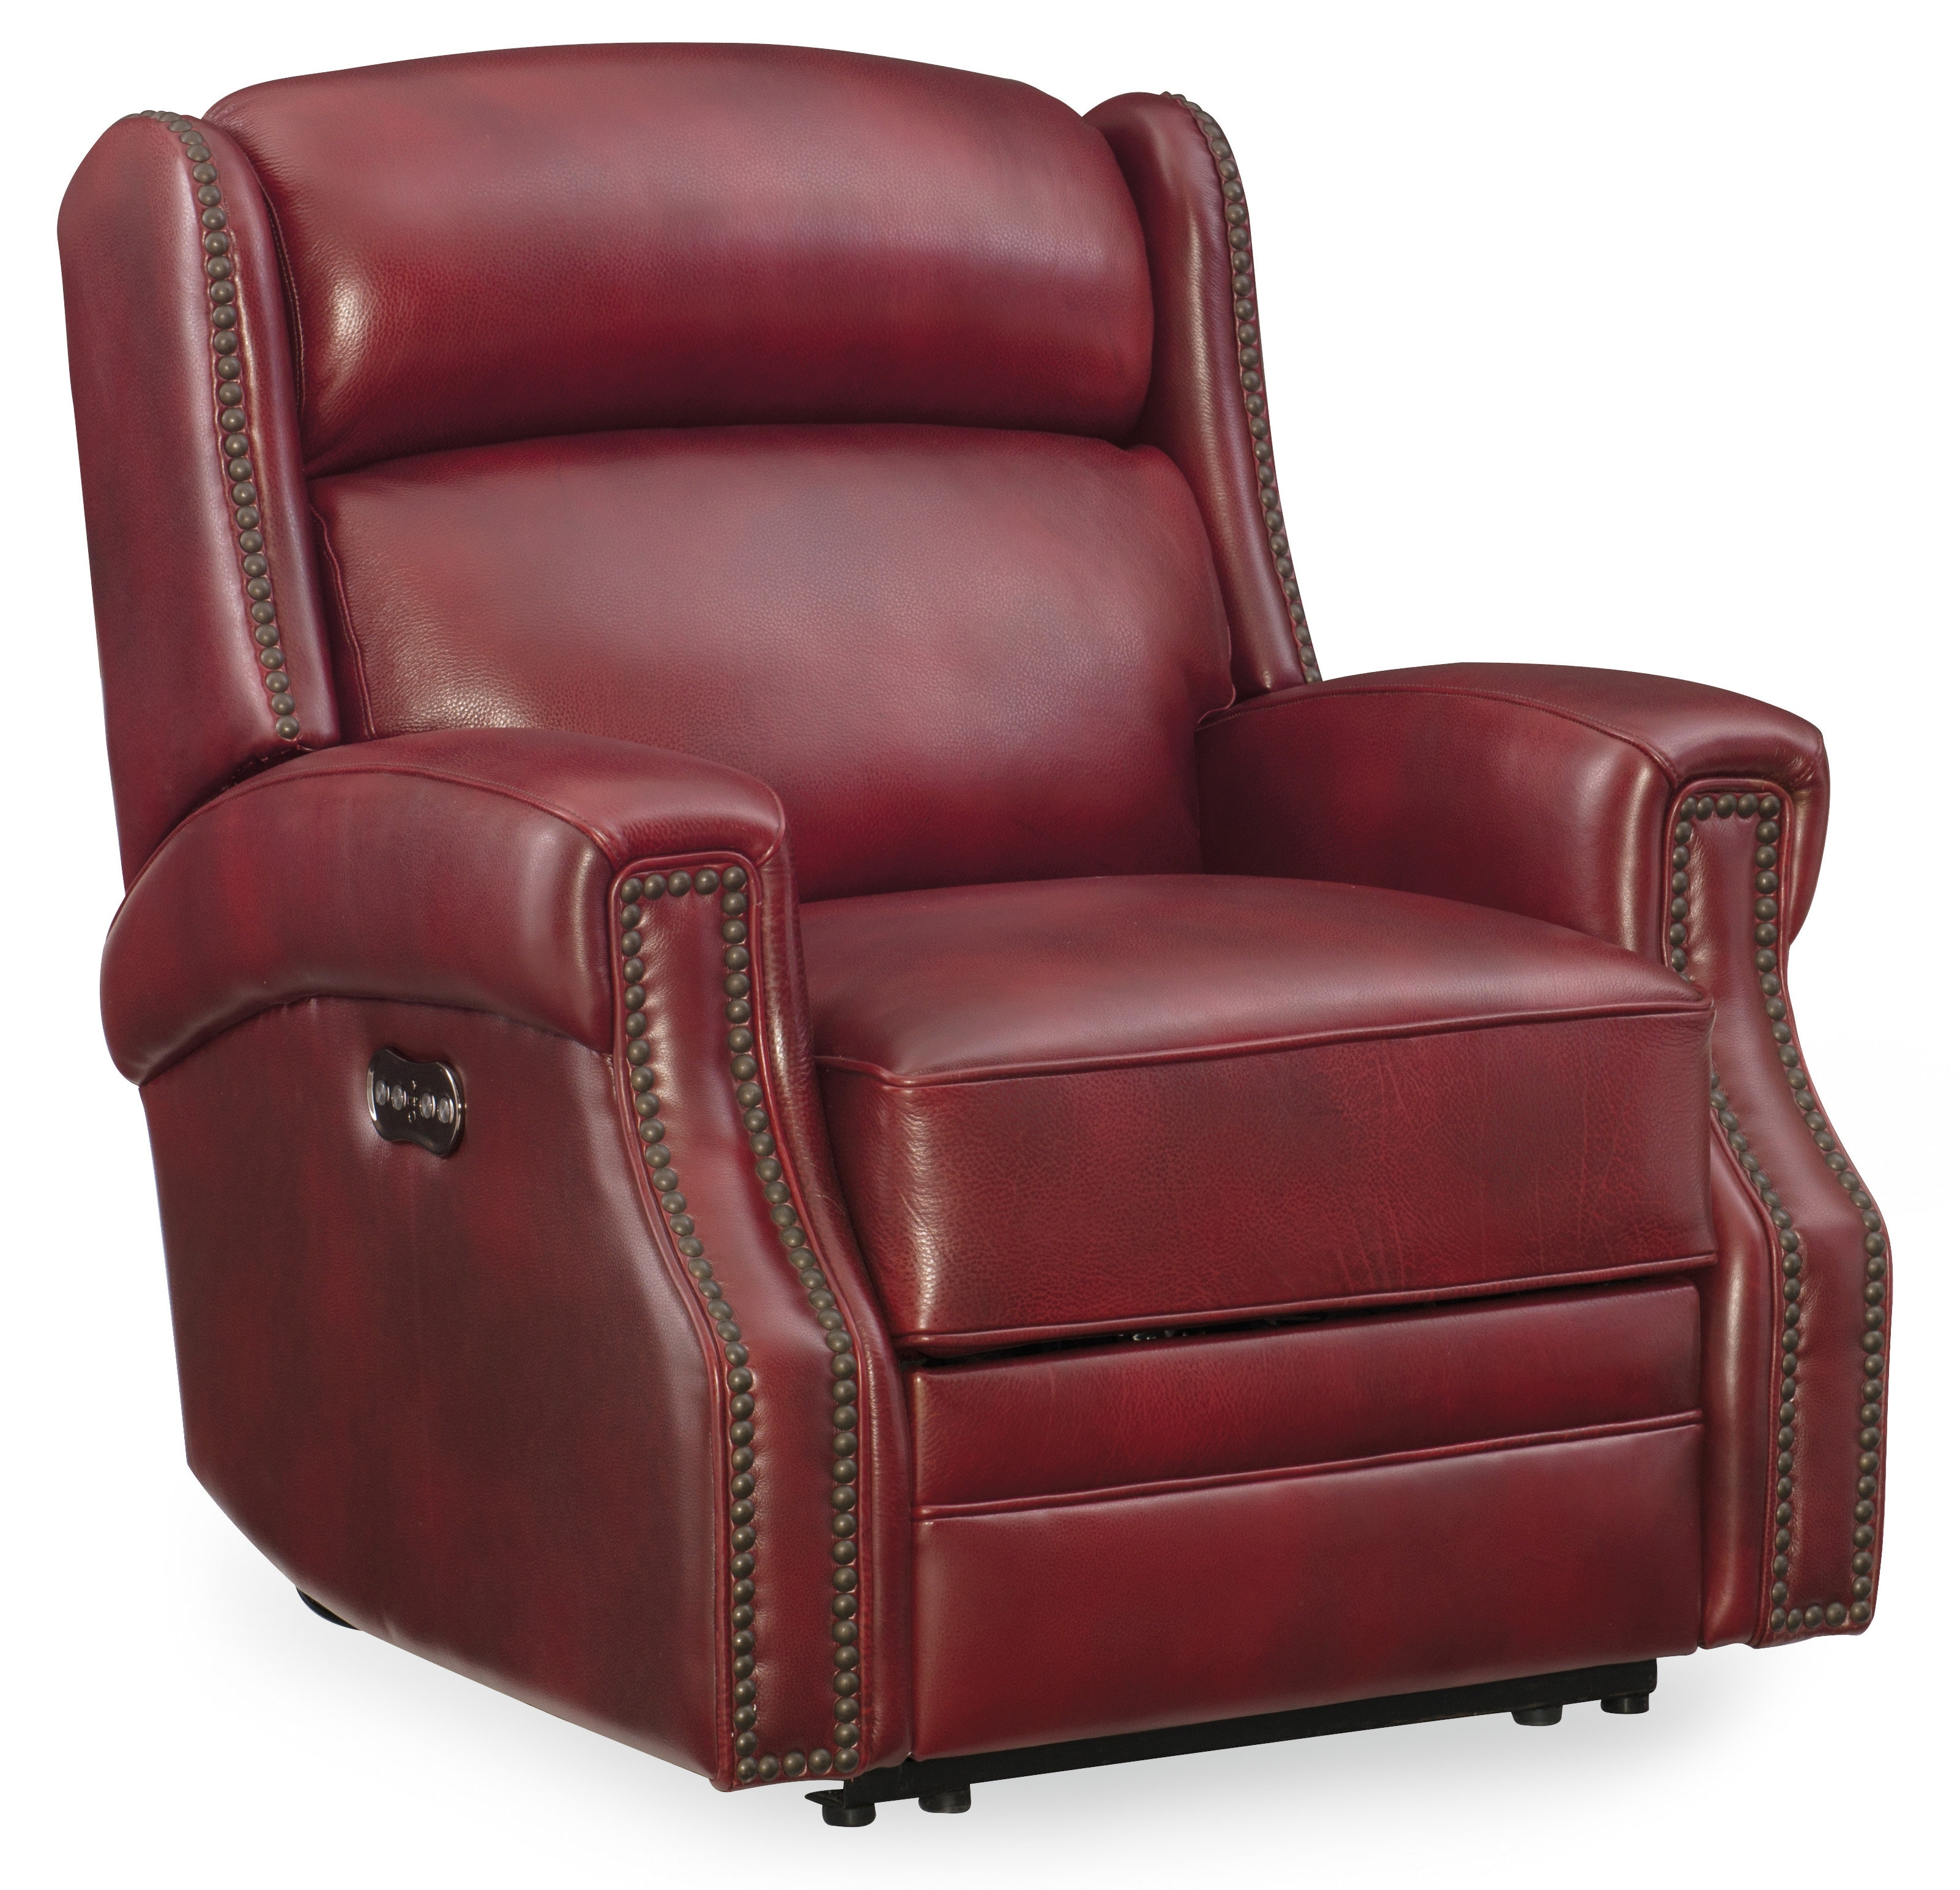 Hooker Furniture Carlisle Leather Power Recliner With Power Headrest For Clyde Grey Leather 3 Piece Power Reclining Sectionals With Pwr Hdrst & Usb (Image 16 of 25)